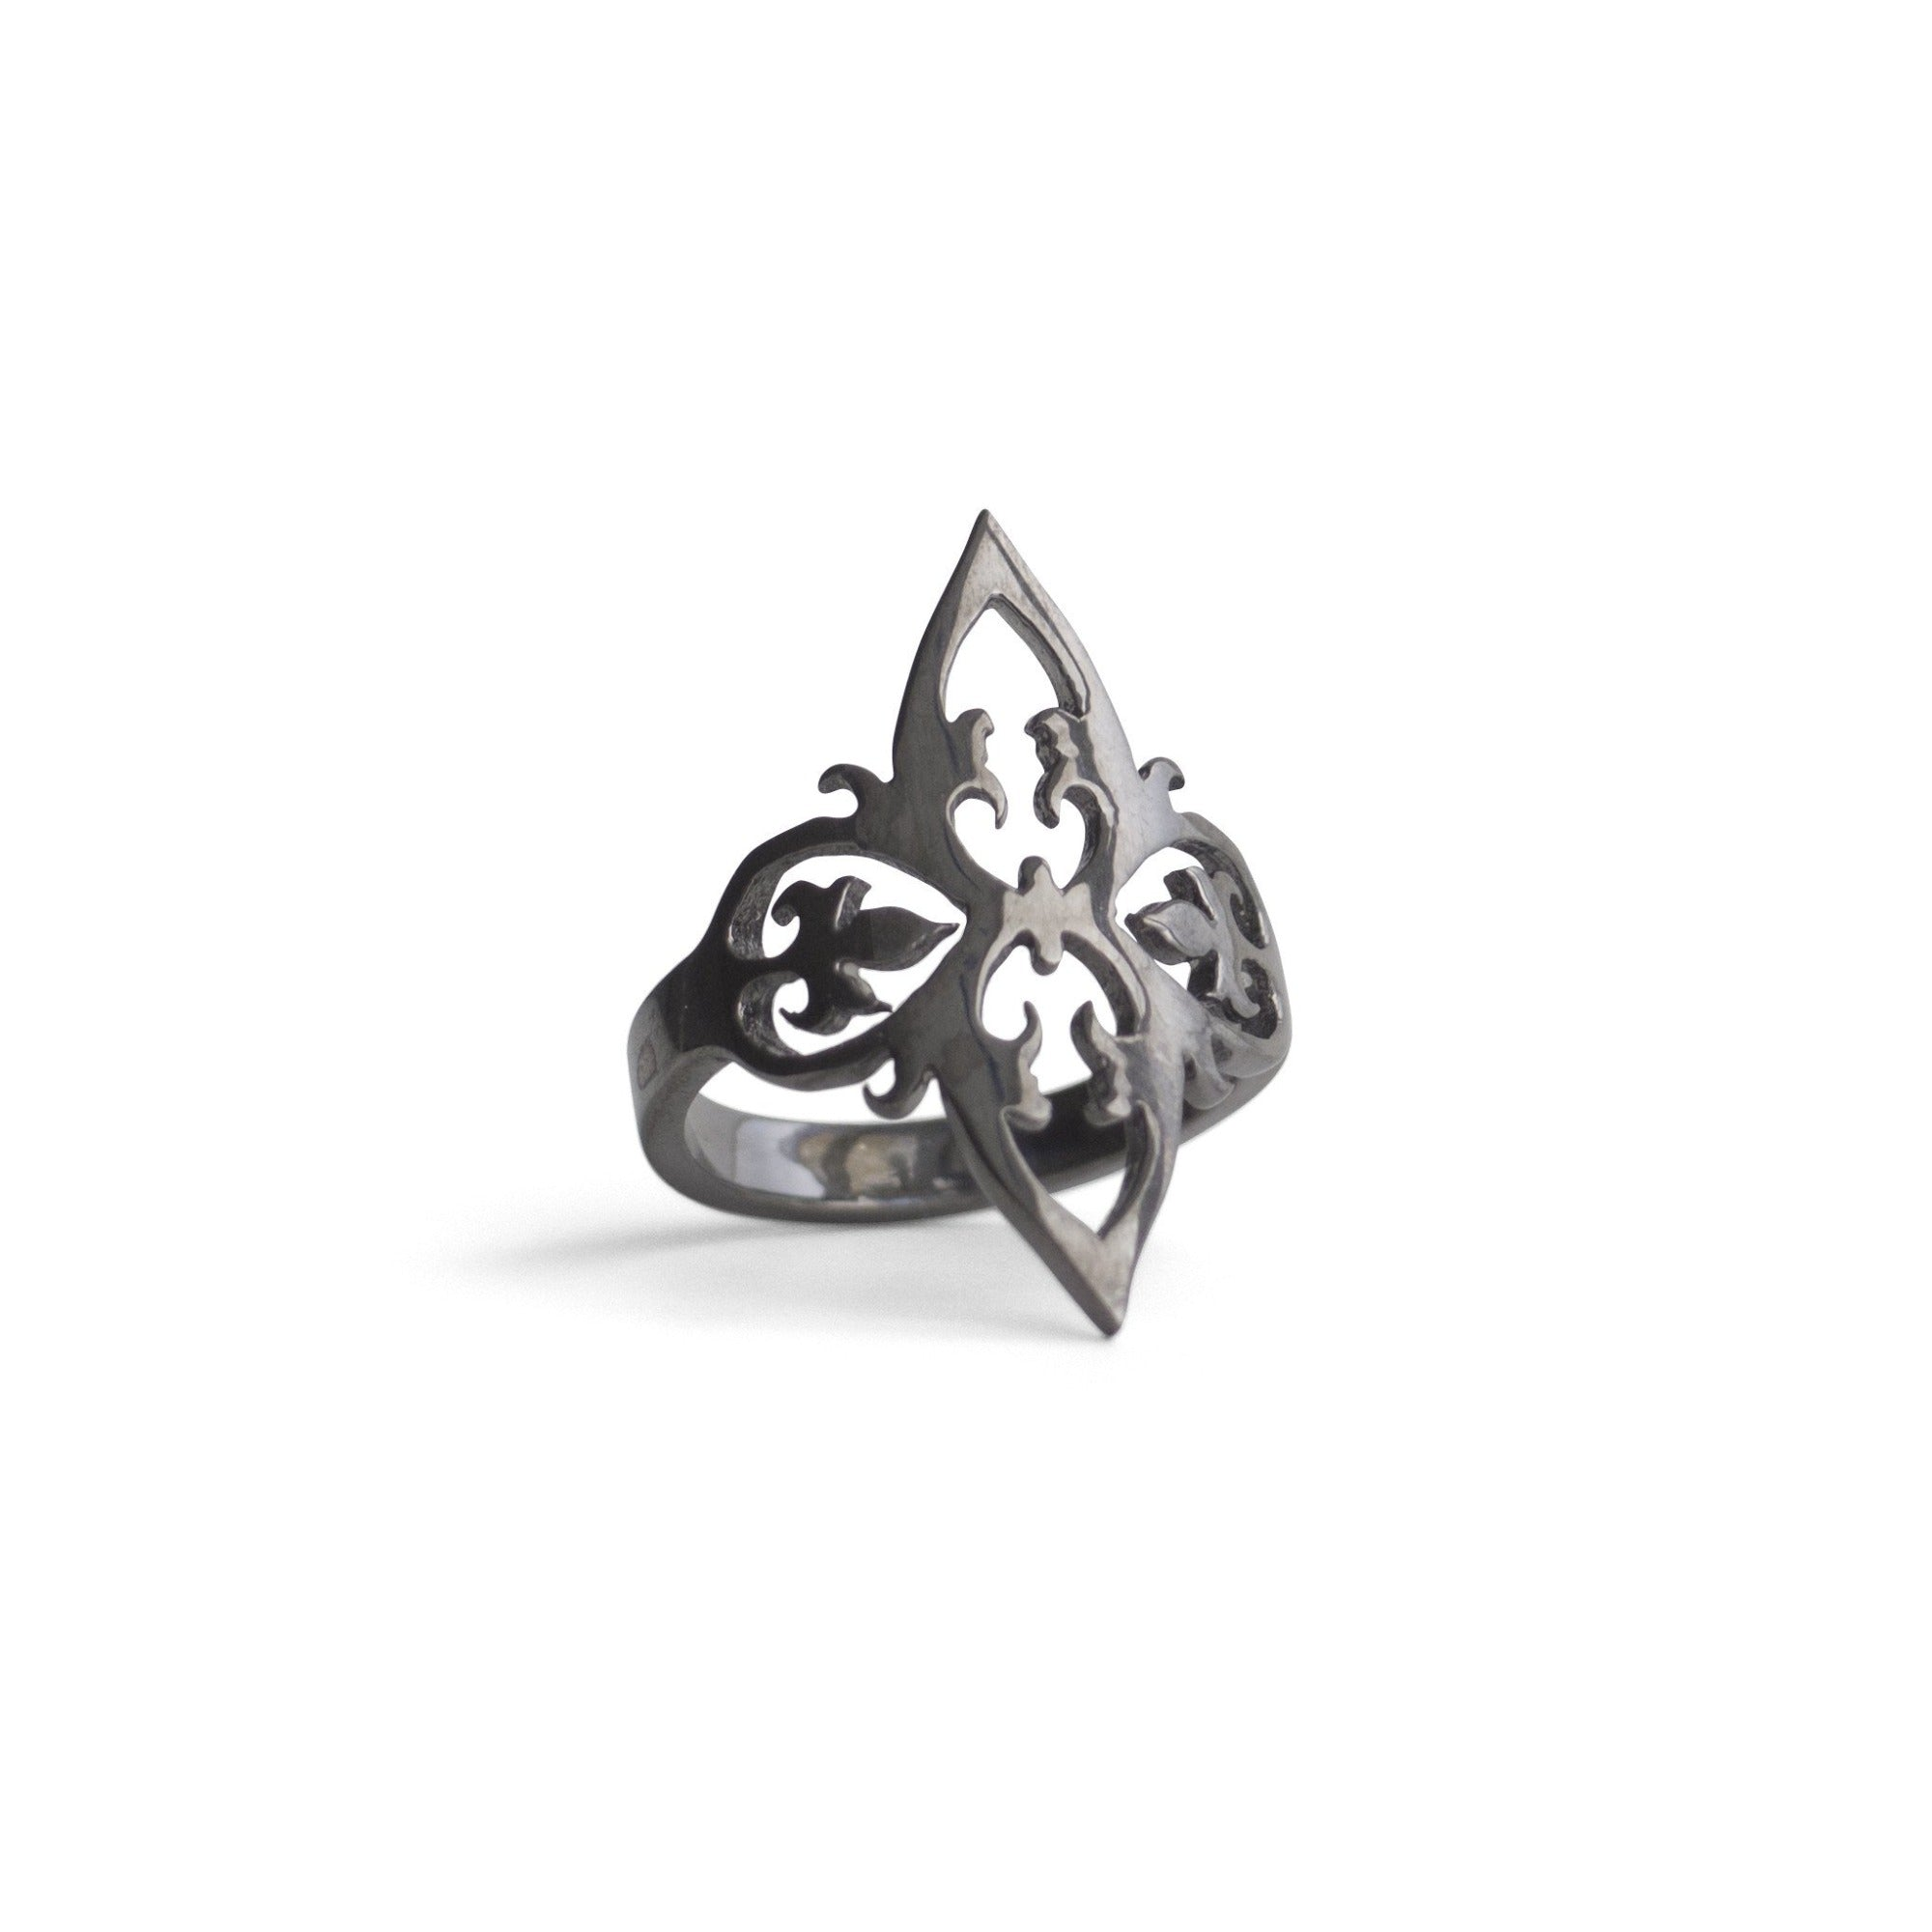 sterling silver plated in black rhodium / 5 arabesque cocktail ring